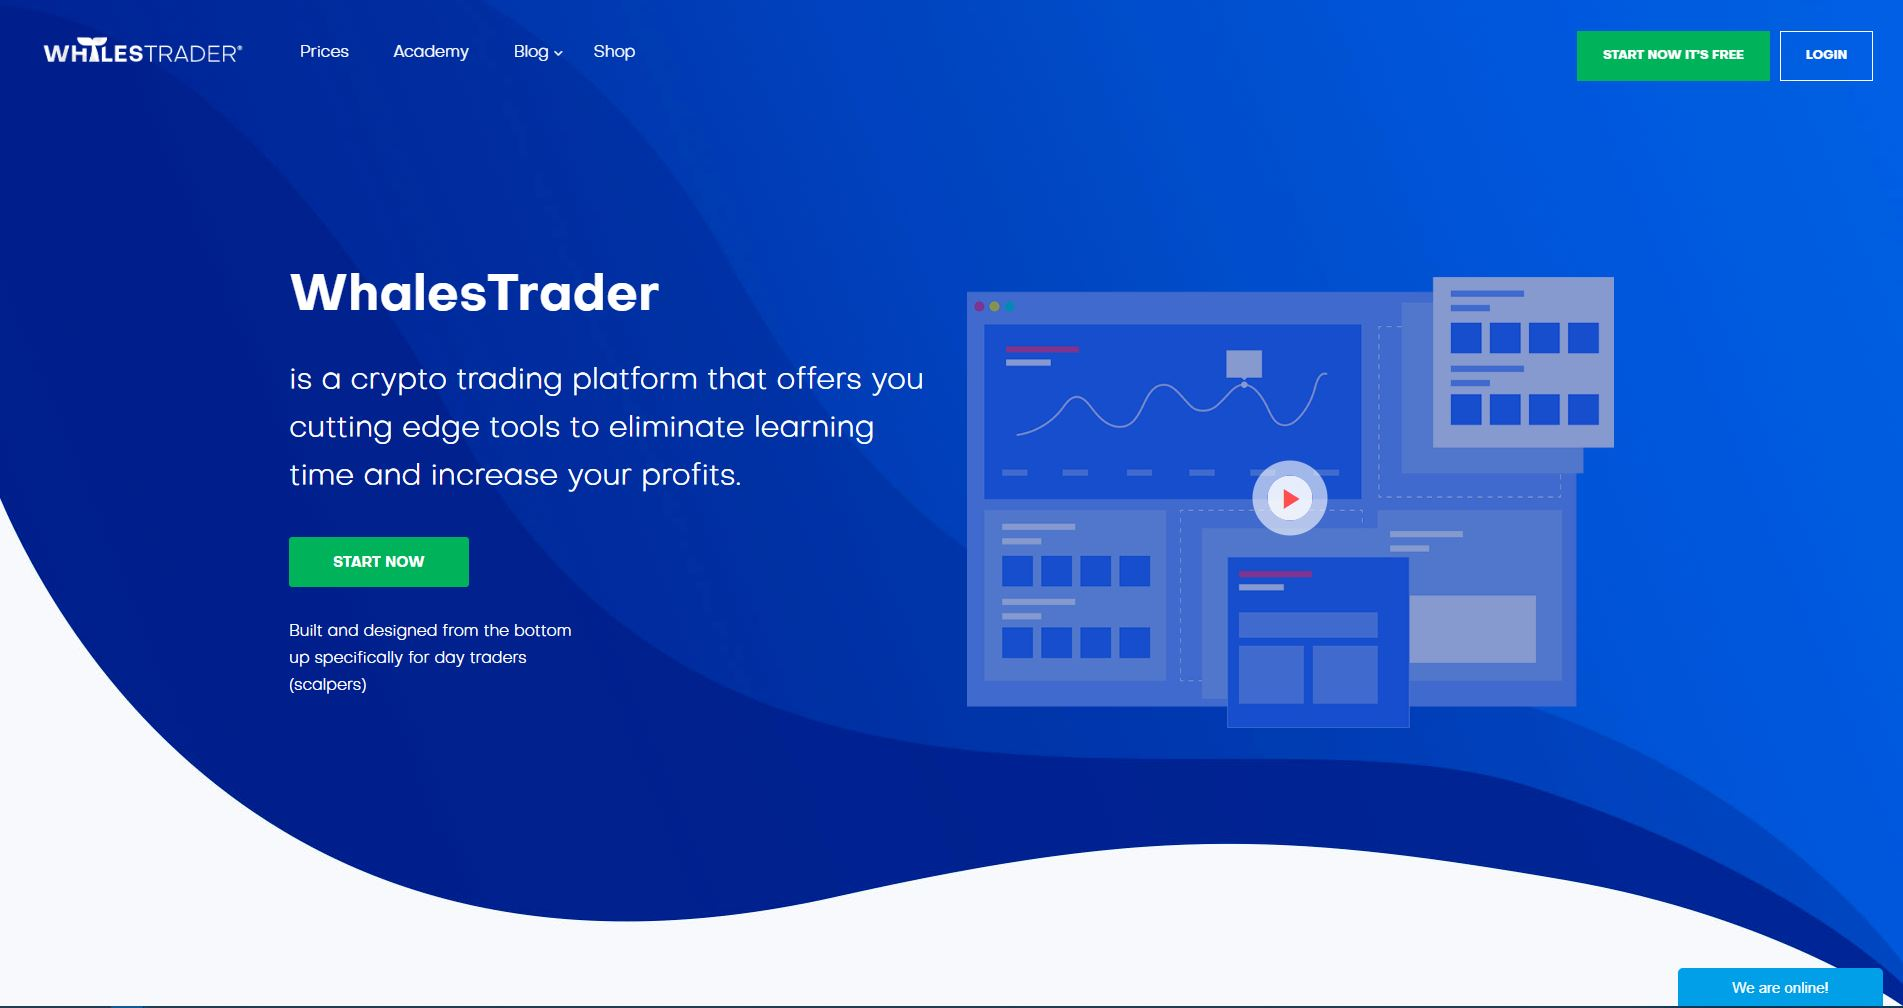 WhalesTrader: How Does This Platform Help Crypto Traders? 13